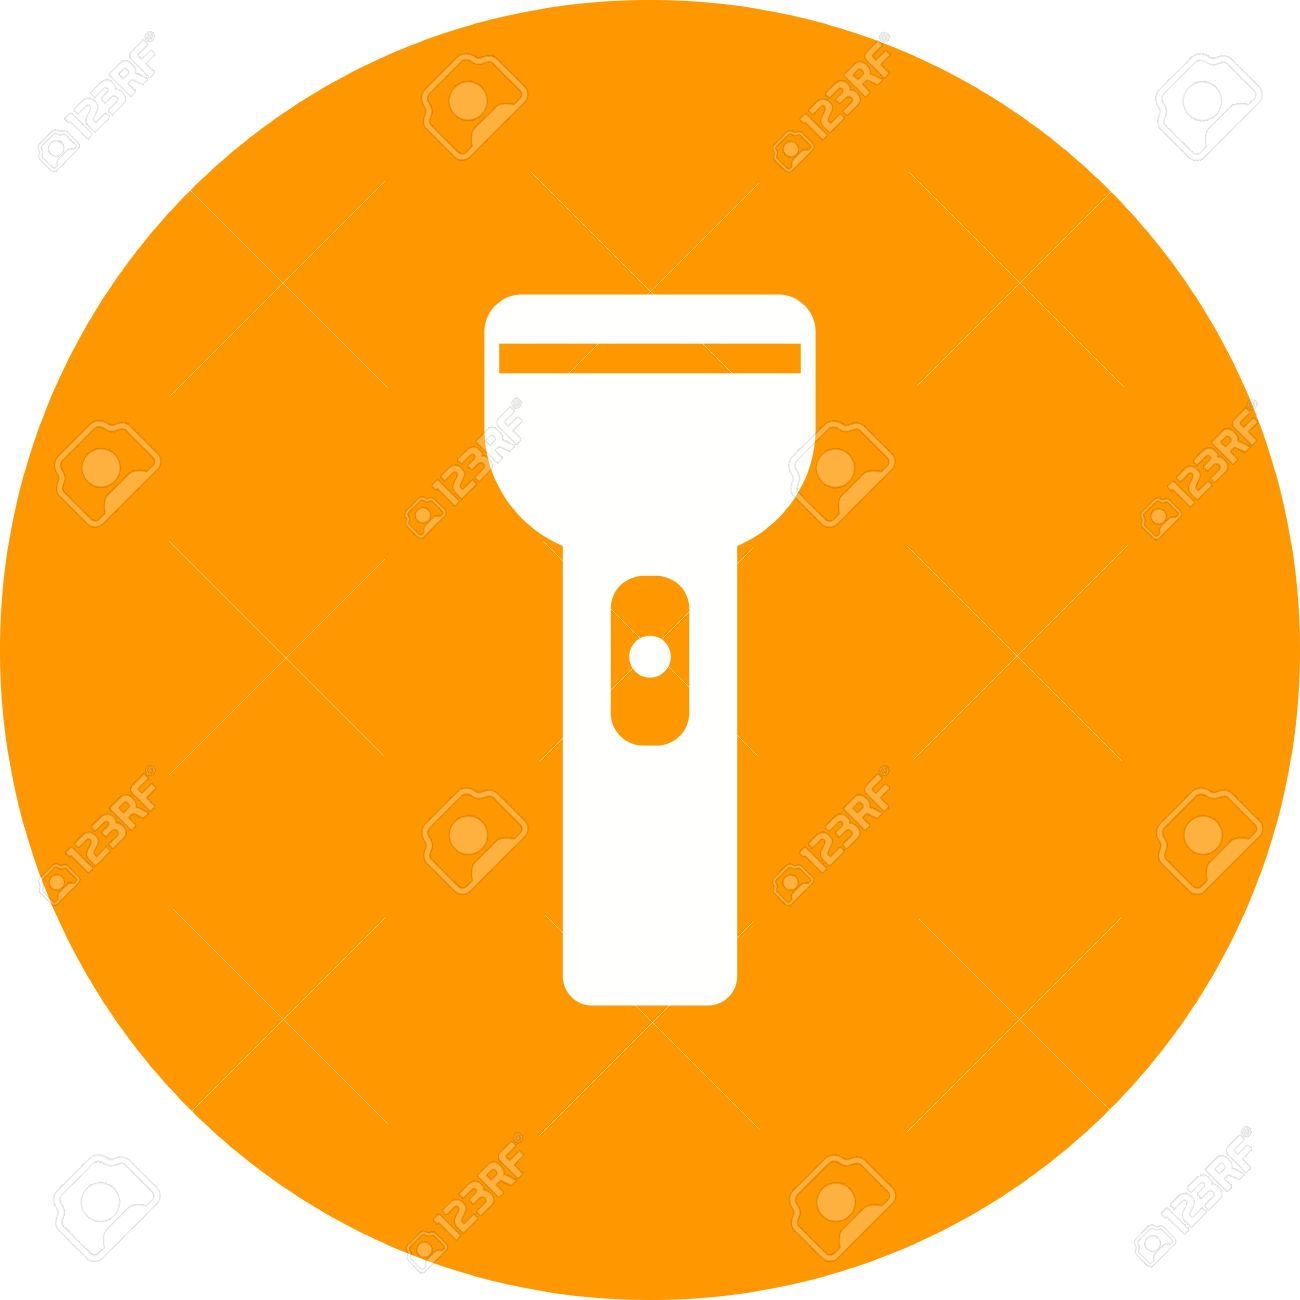 Flashlight, Light, Object Icon Vector Image. Can Also Be Used.